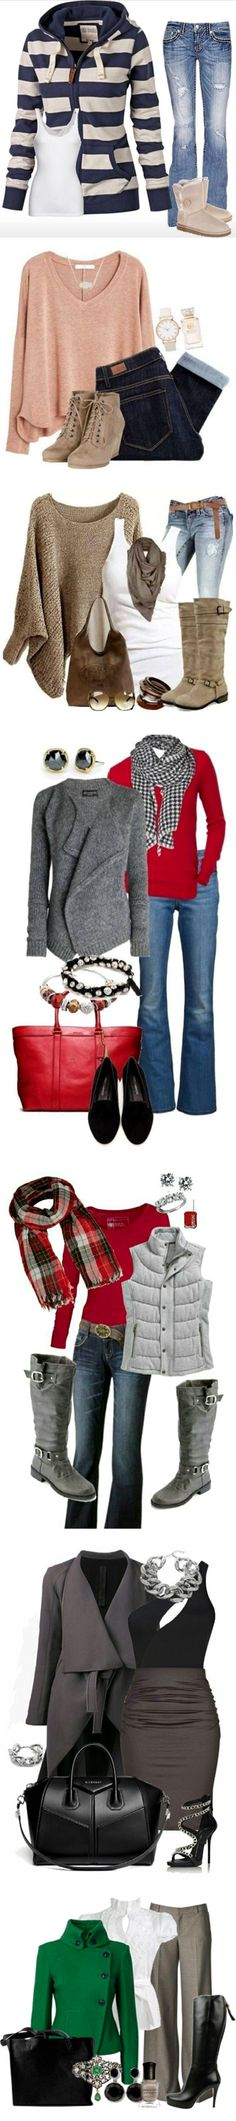 Chic Outfit Ideas How To Look Classy, That Look, Chic Outfits, Fashion Outfits, Outfit Ideas, Board, Cute, Classy Outfits, Sign